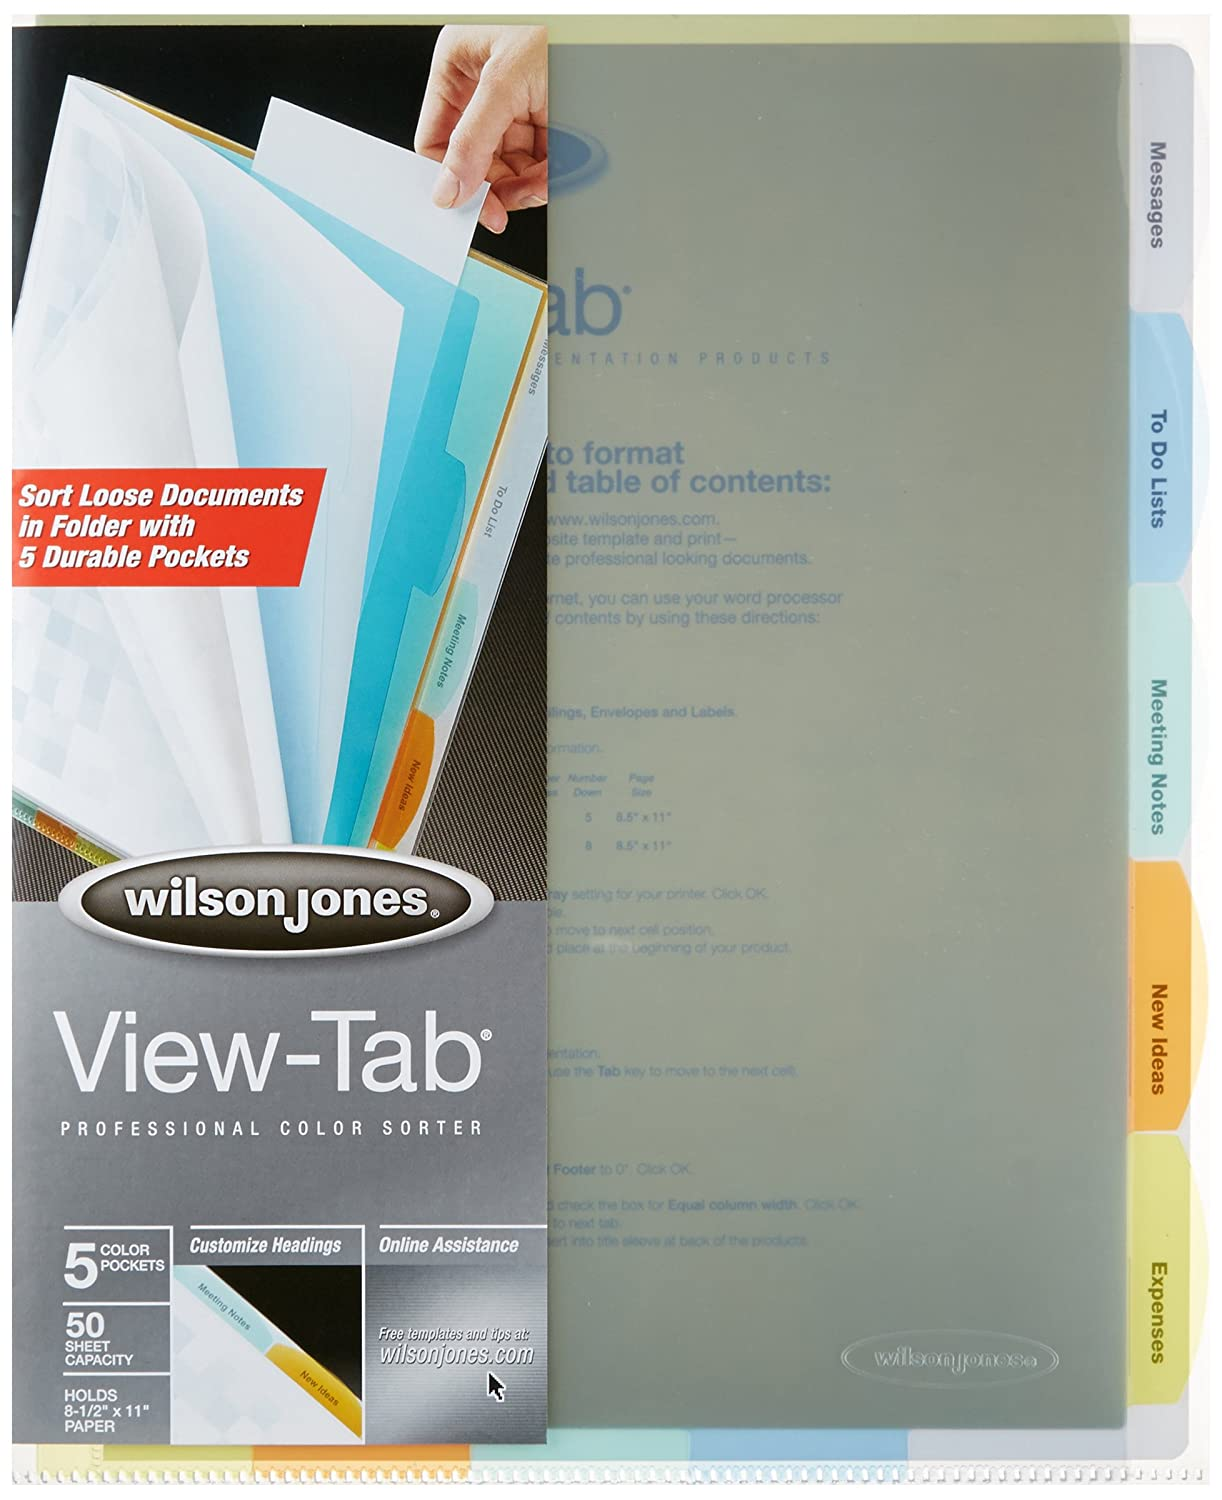 Wilson Jones View-Tab Professional Sorter, 5 Tabs, Letter Size, Multi-Color (W55120) ACCO Brands Canada Inc.